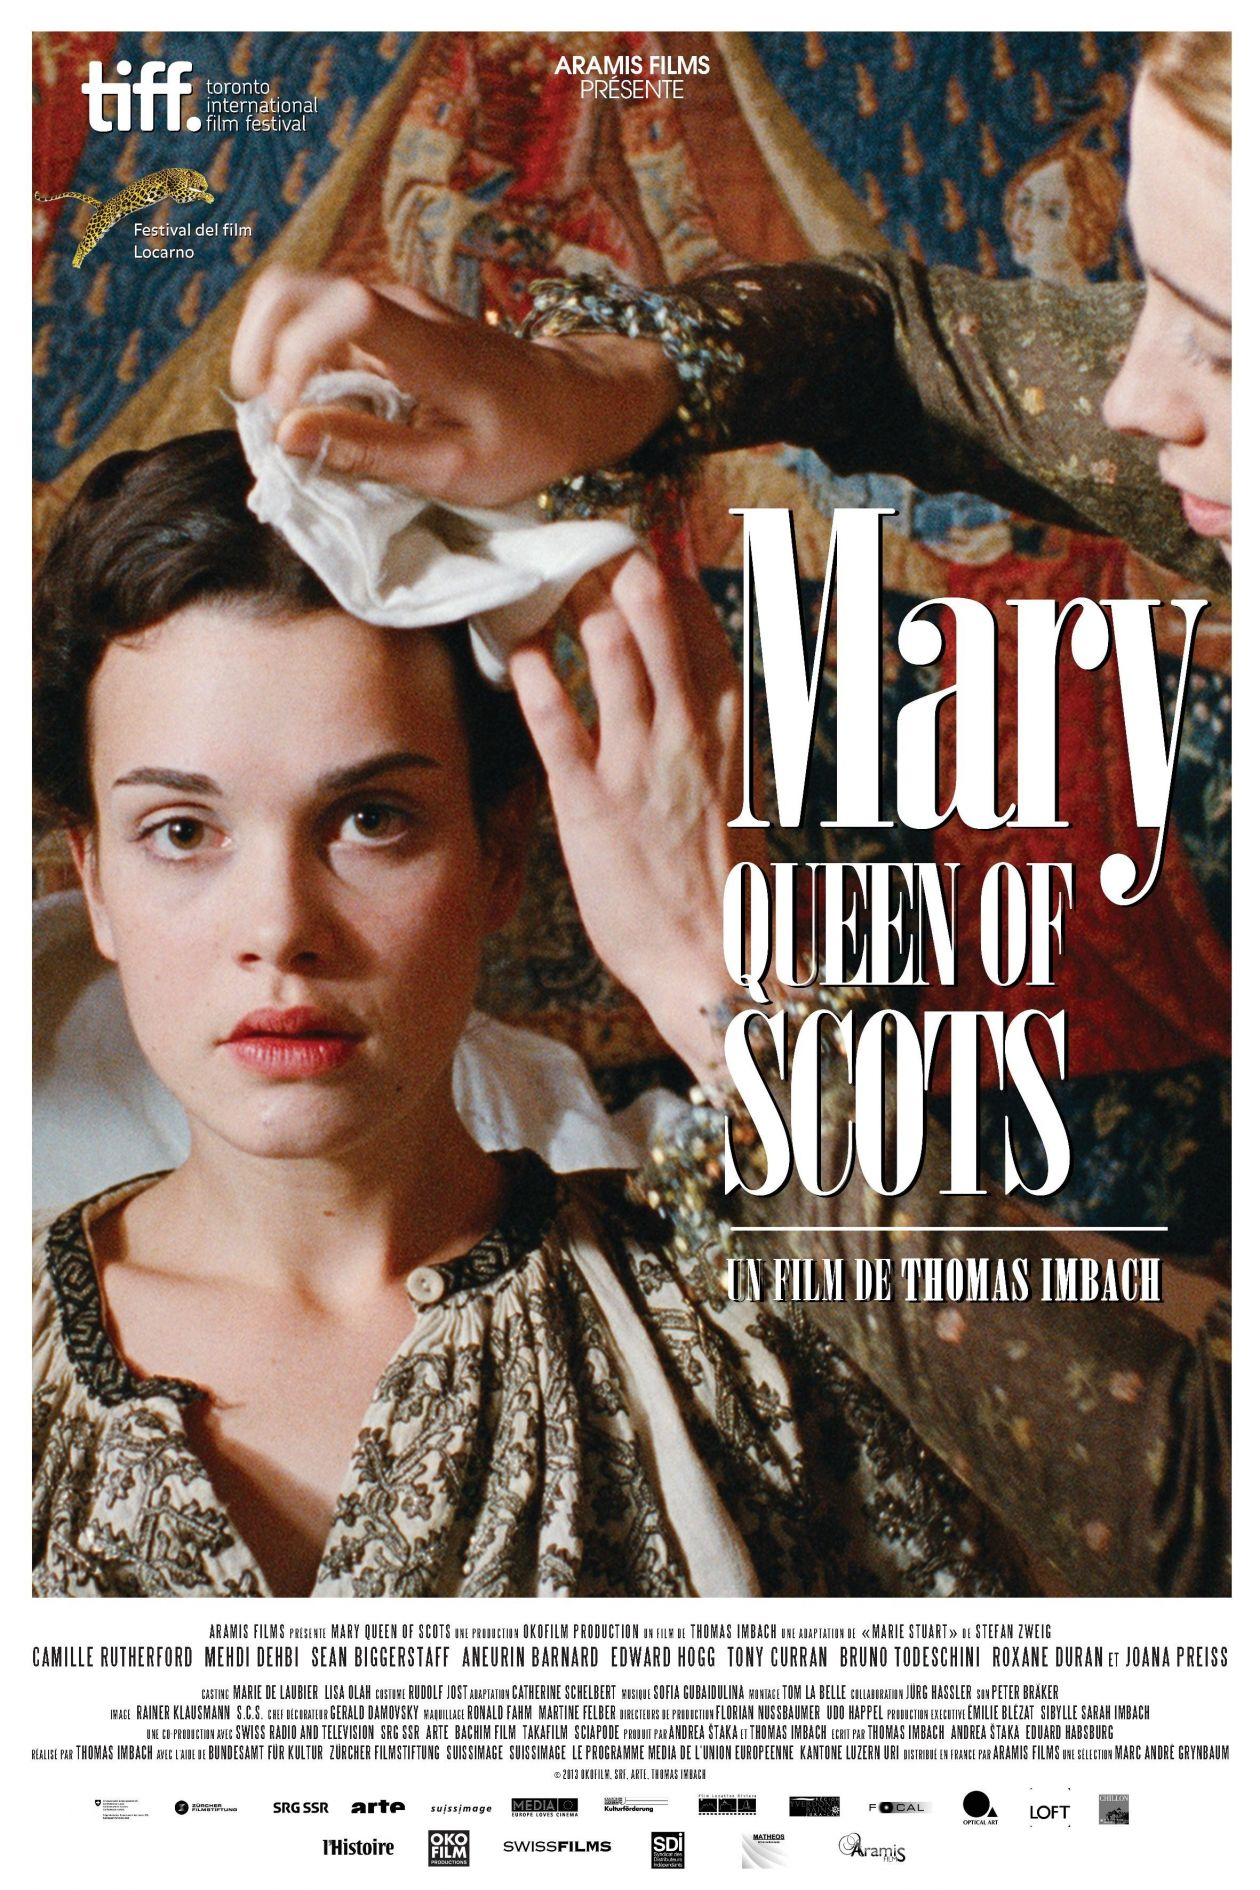 Camille Rutherford actress | Mary Queen of Scots | Thomas Imbach 2013 Movie Poster Affiche film